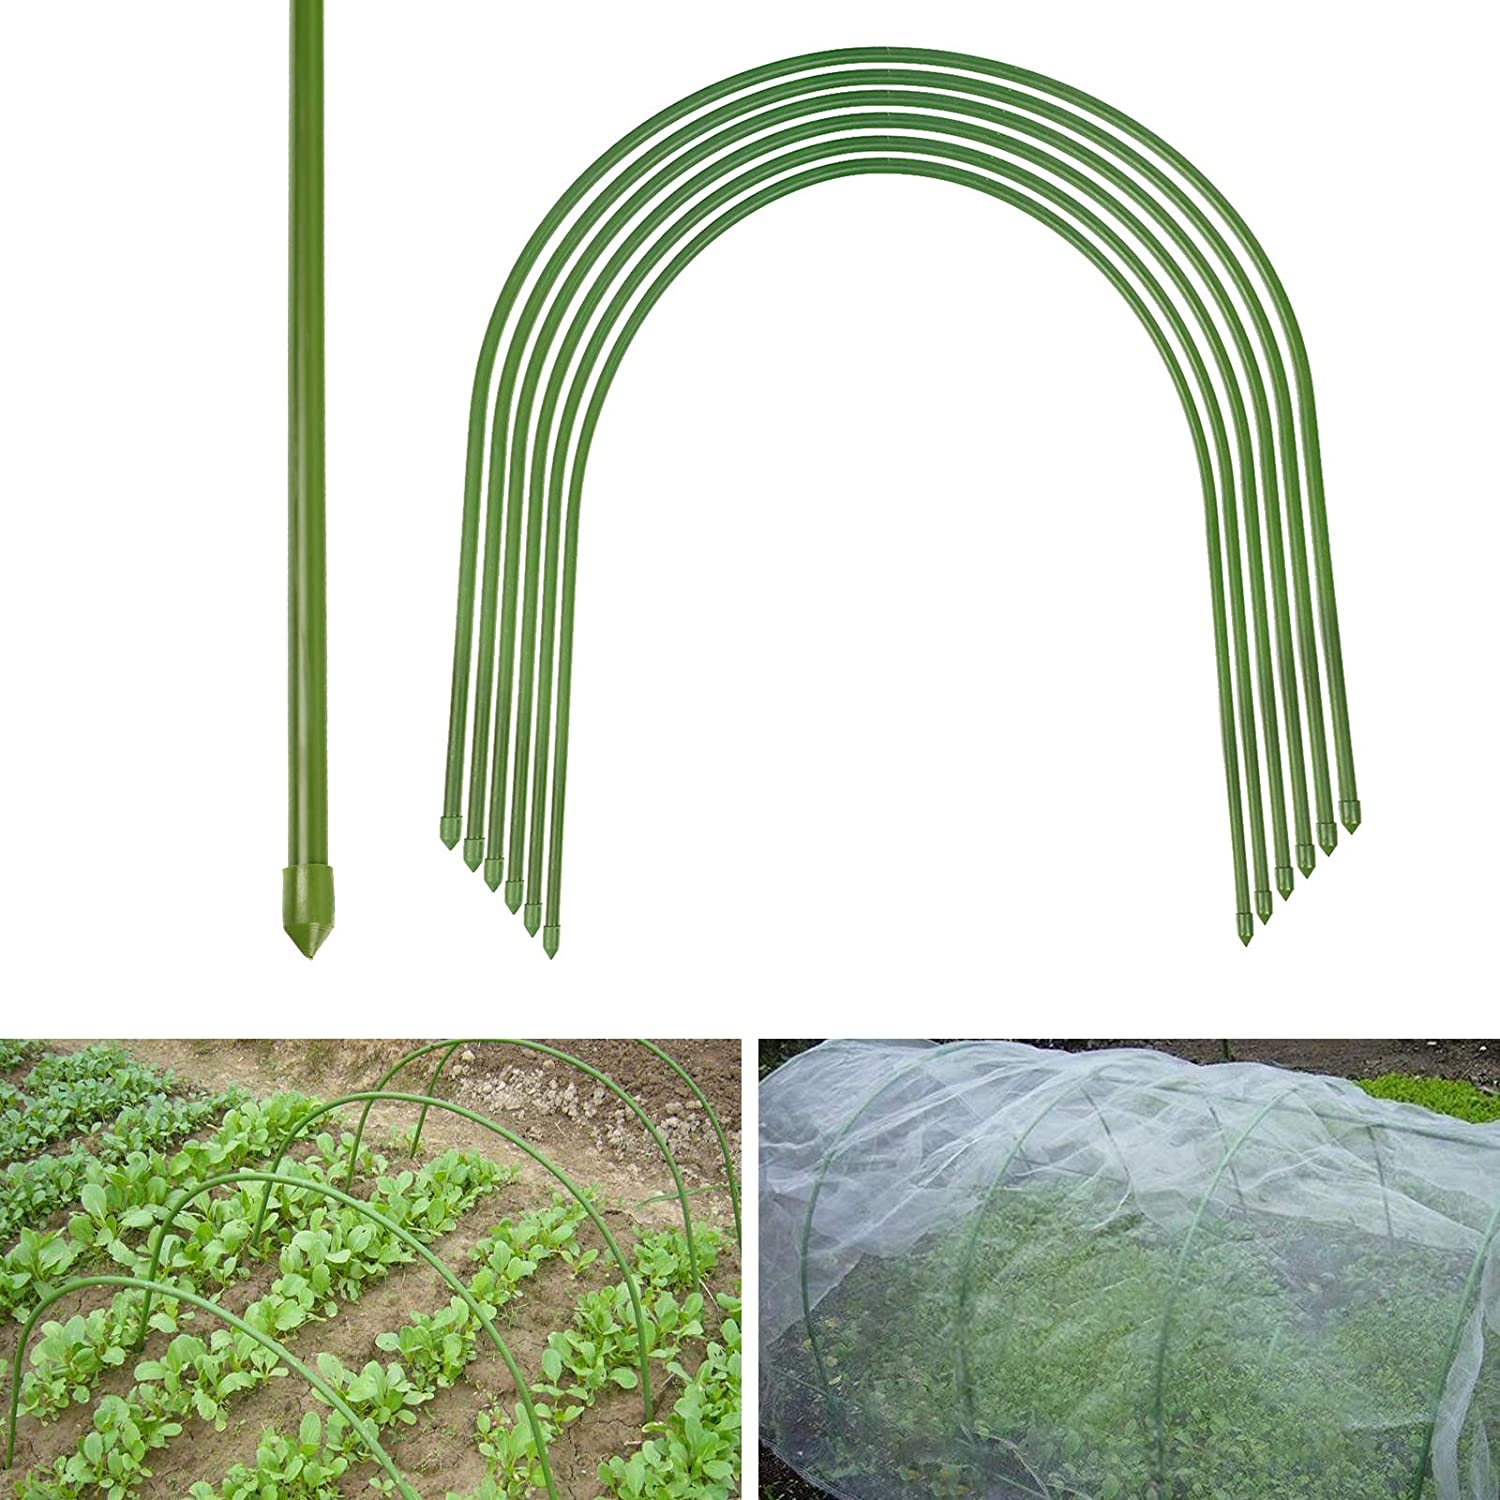 BEAMNOVA Greenhouse Hoops 6-Pack Dia. Φ11mm/0.43in 20x19in Garden Hoops for Plant Cover Support Rust Free Plastic Coated Support Hoops for Greenhouses